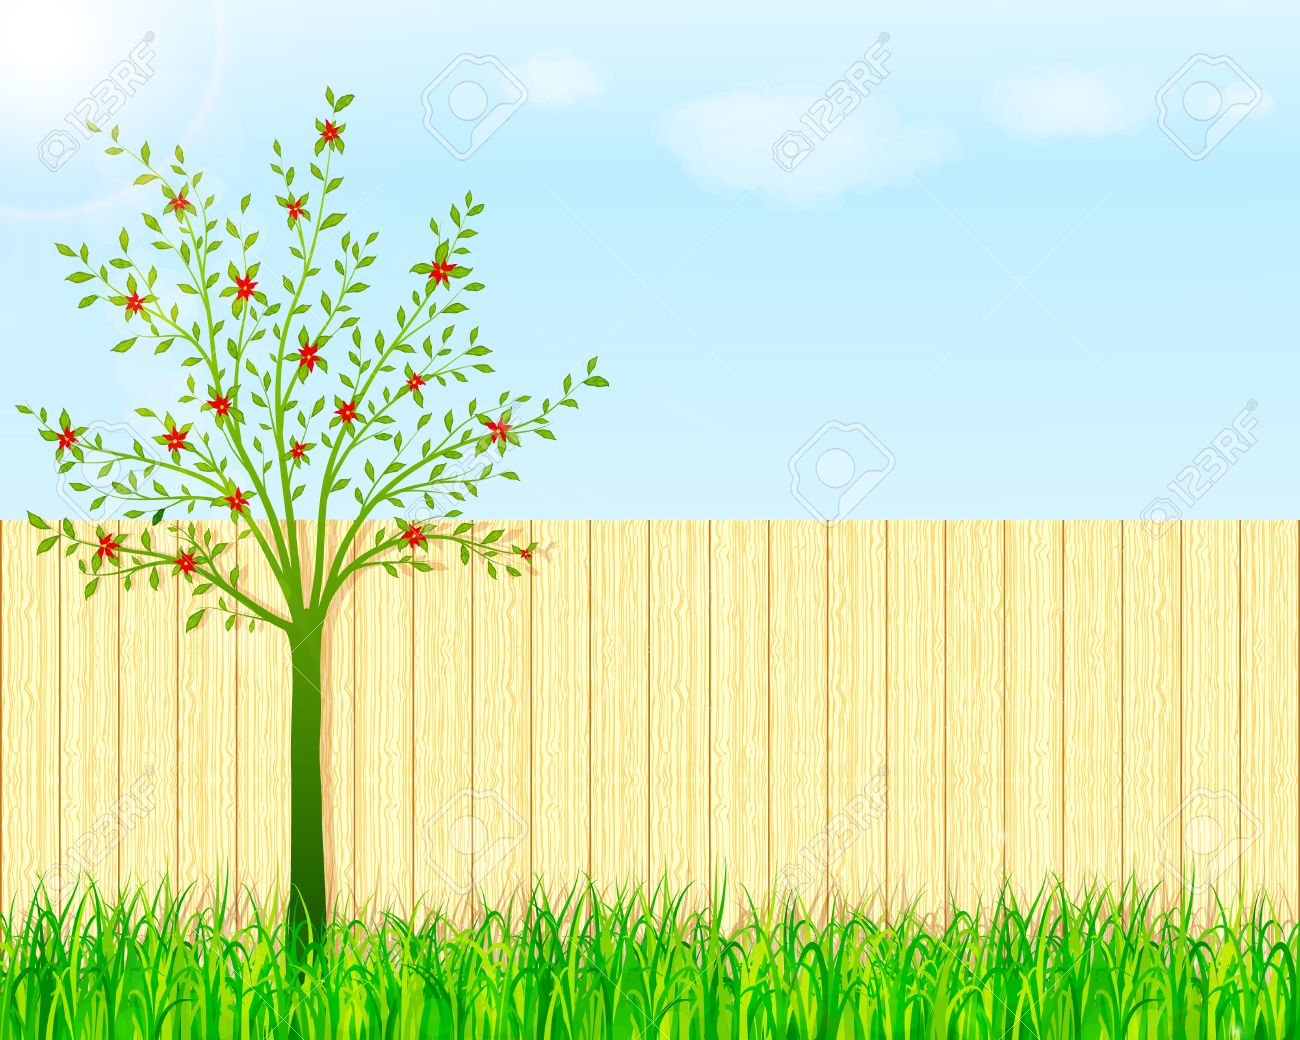 Backyard Garden Background Royalty Free Cliparts Vectors And Stock Illustration Image 53556704